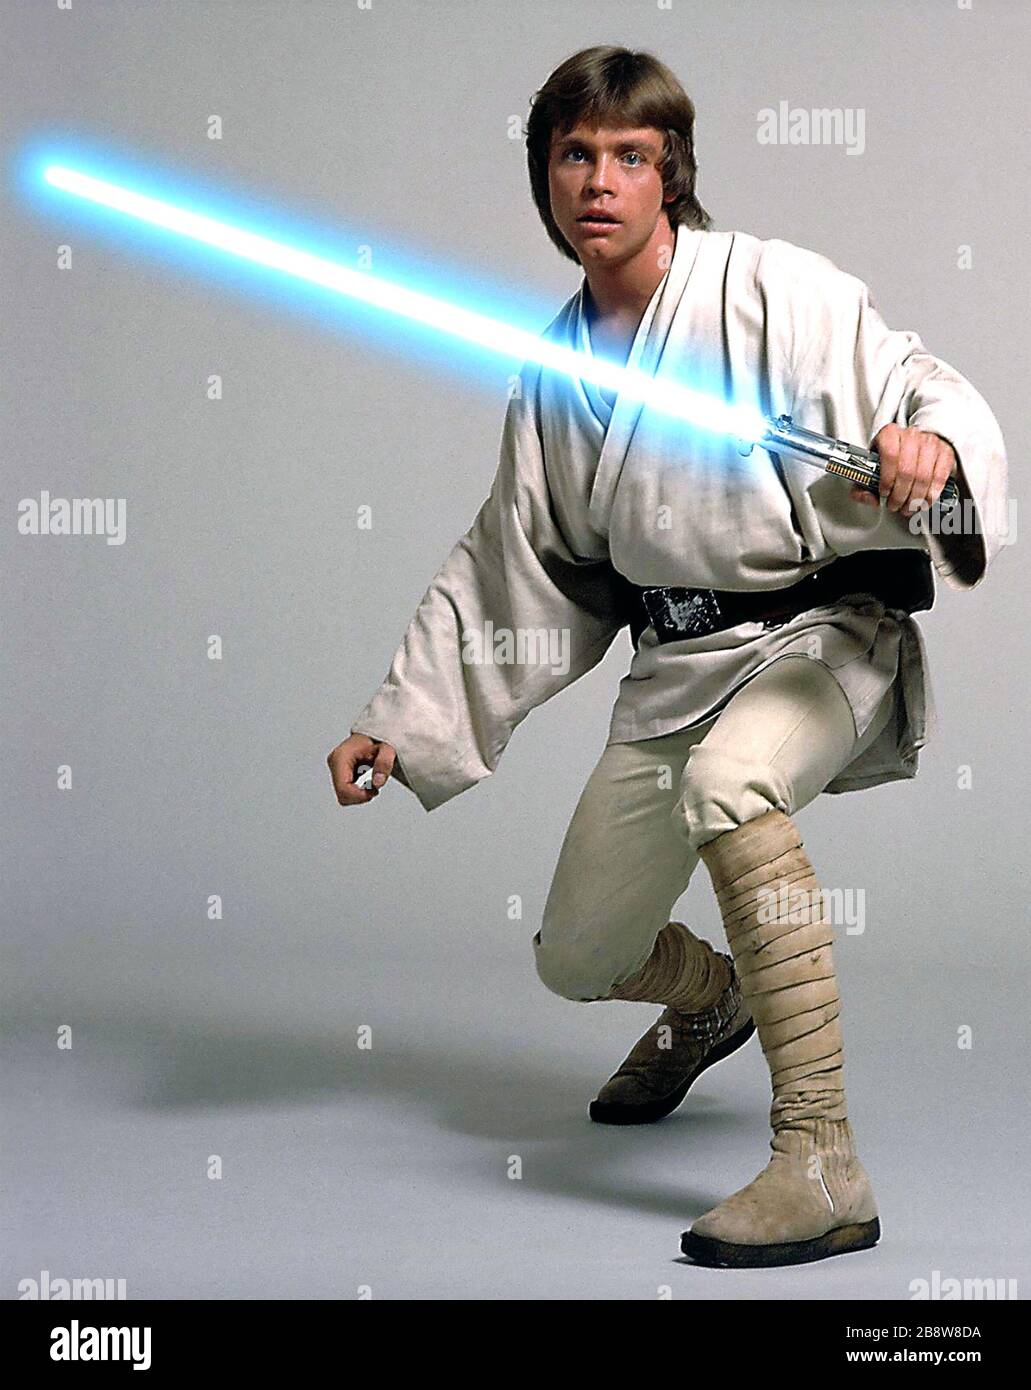 Luke Skywalker High Resolution Stock Photography And Images Alamy